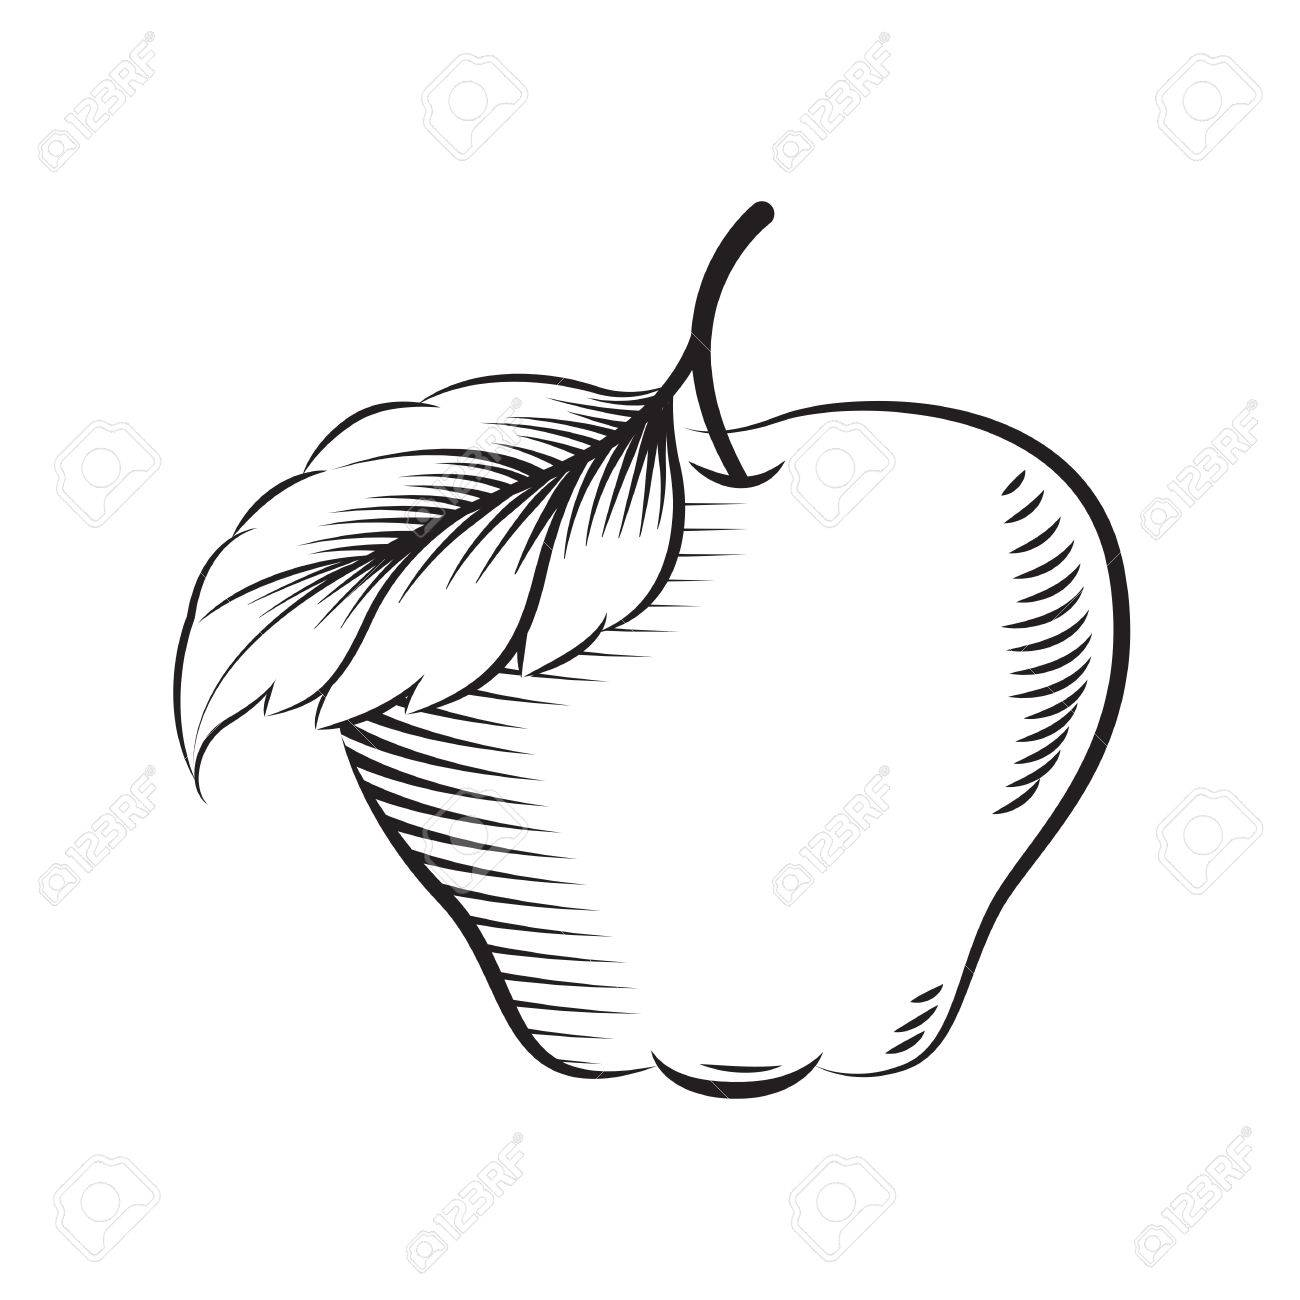 Draw Apple Vector Royalty Free Cliparts Vectors And Stock